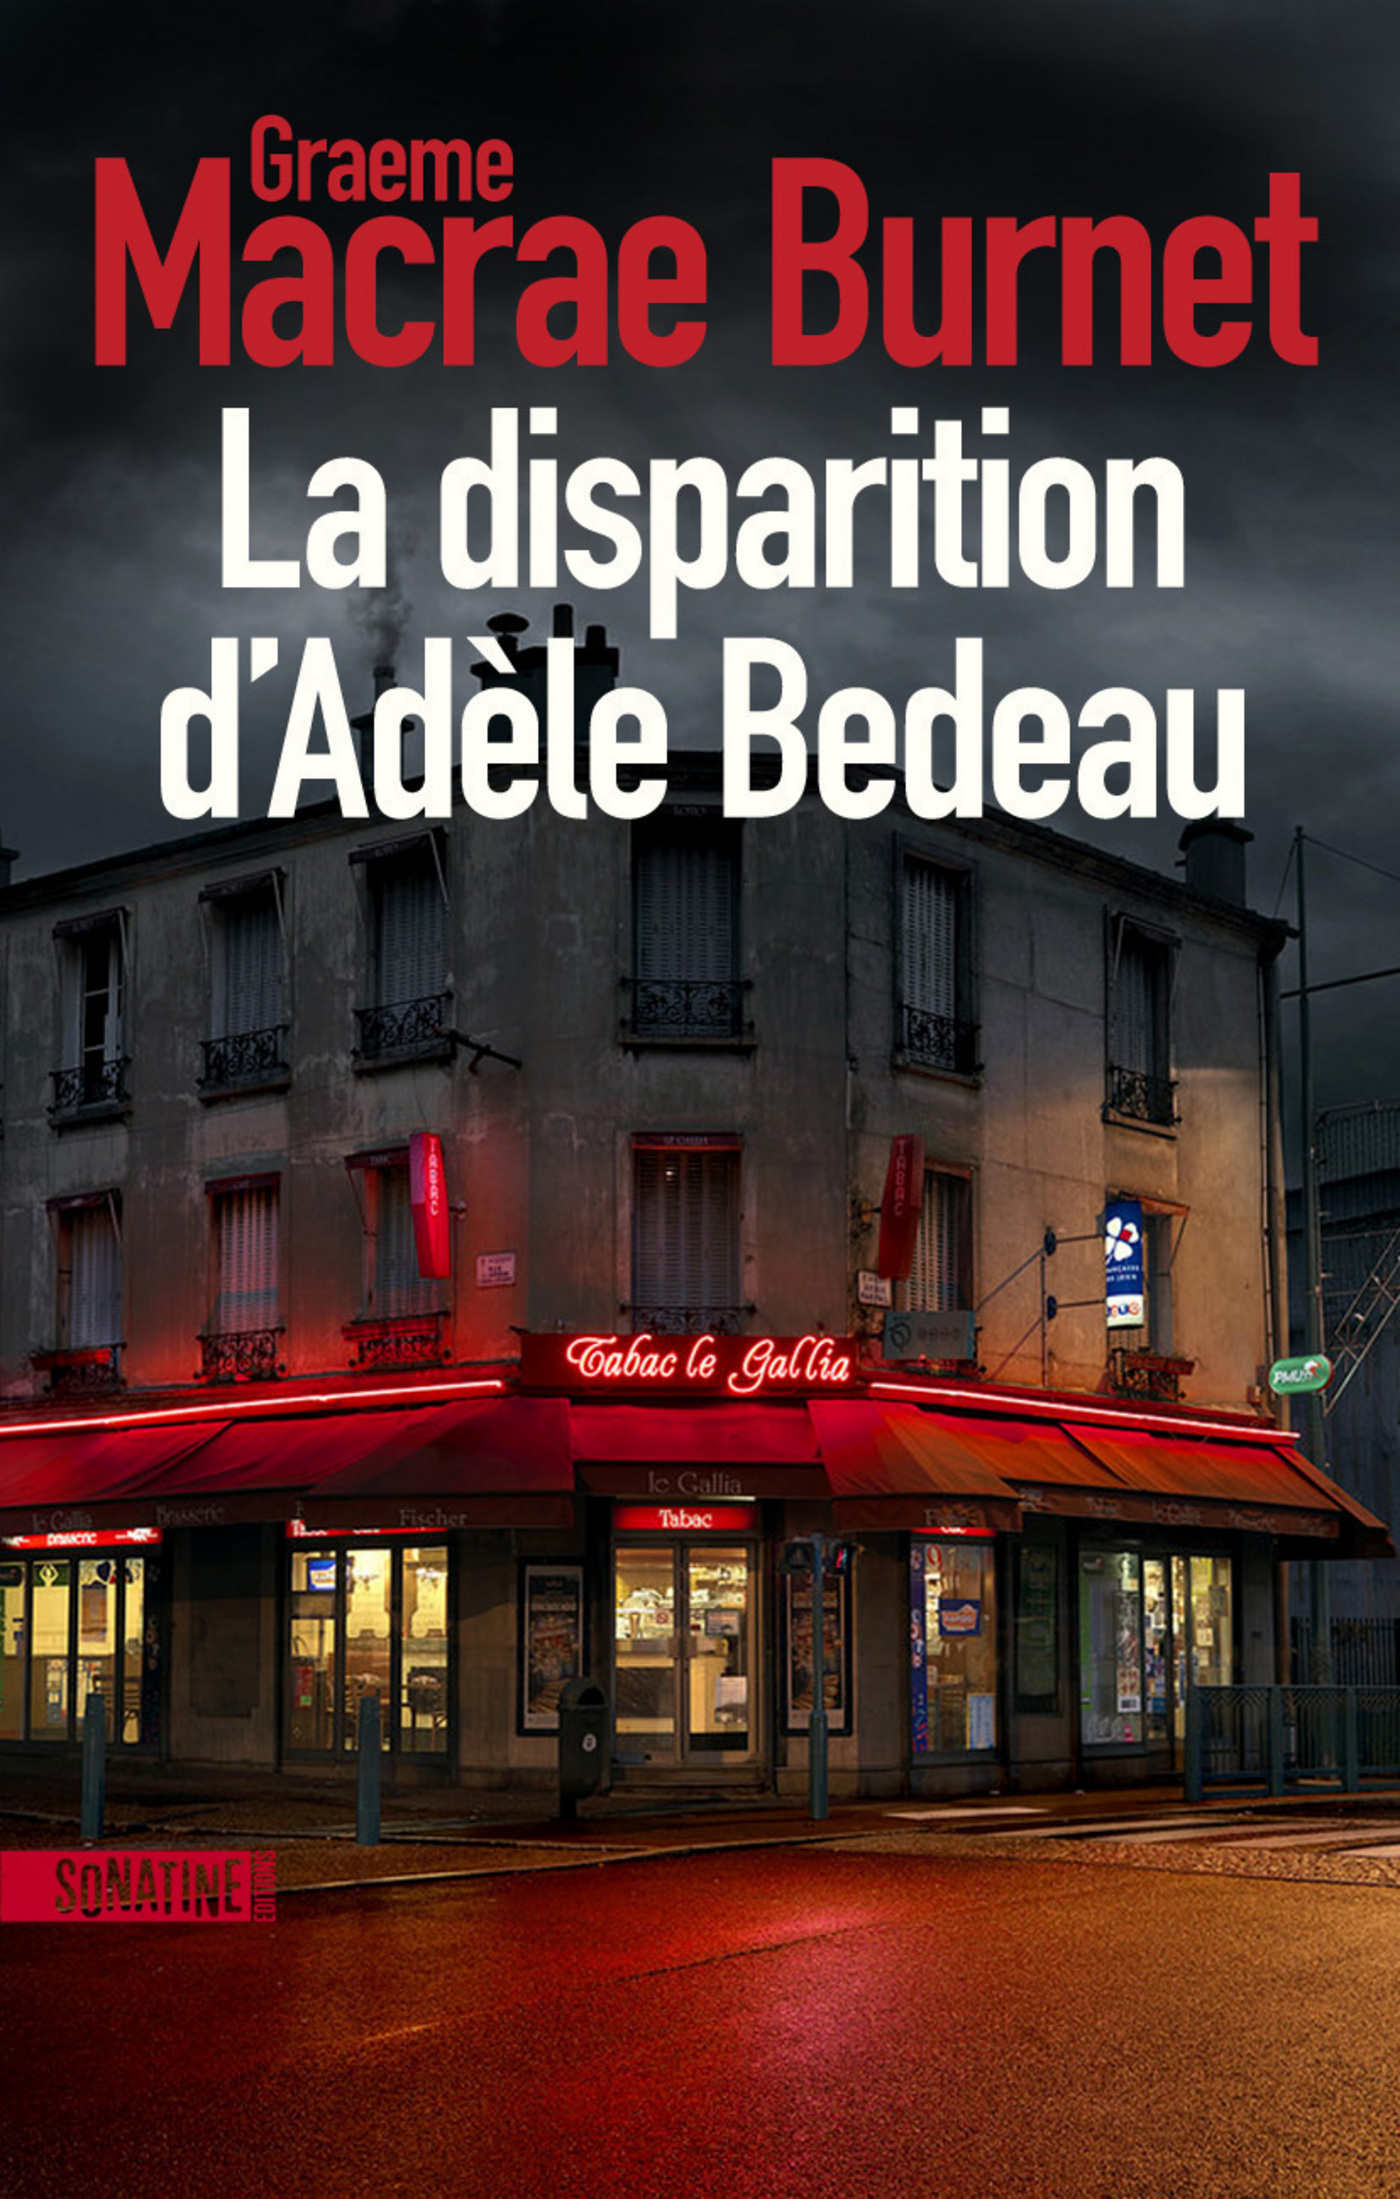 La Disparition d'Ad?le Bedeau